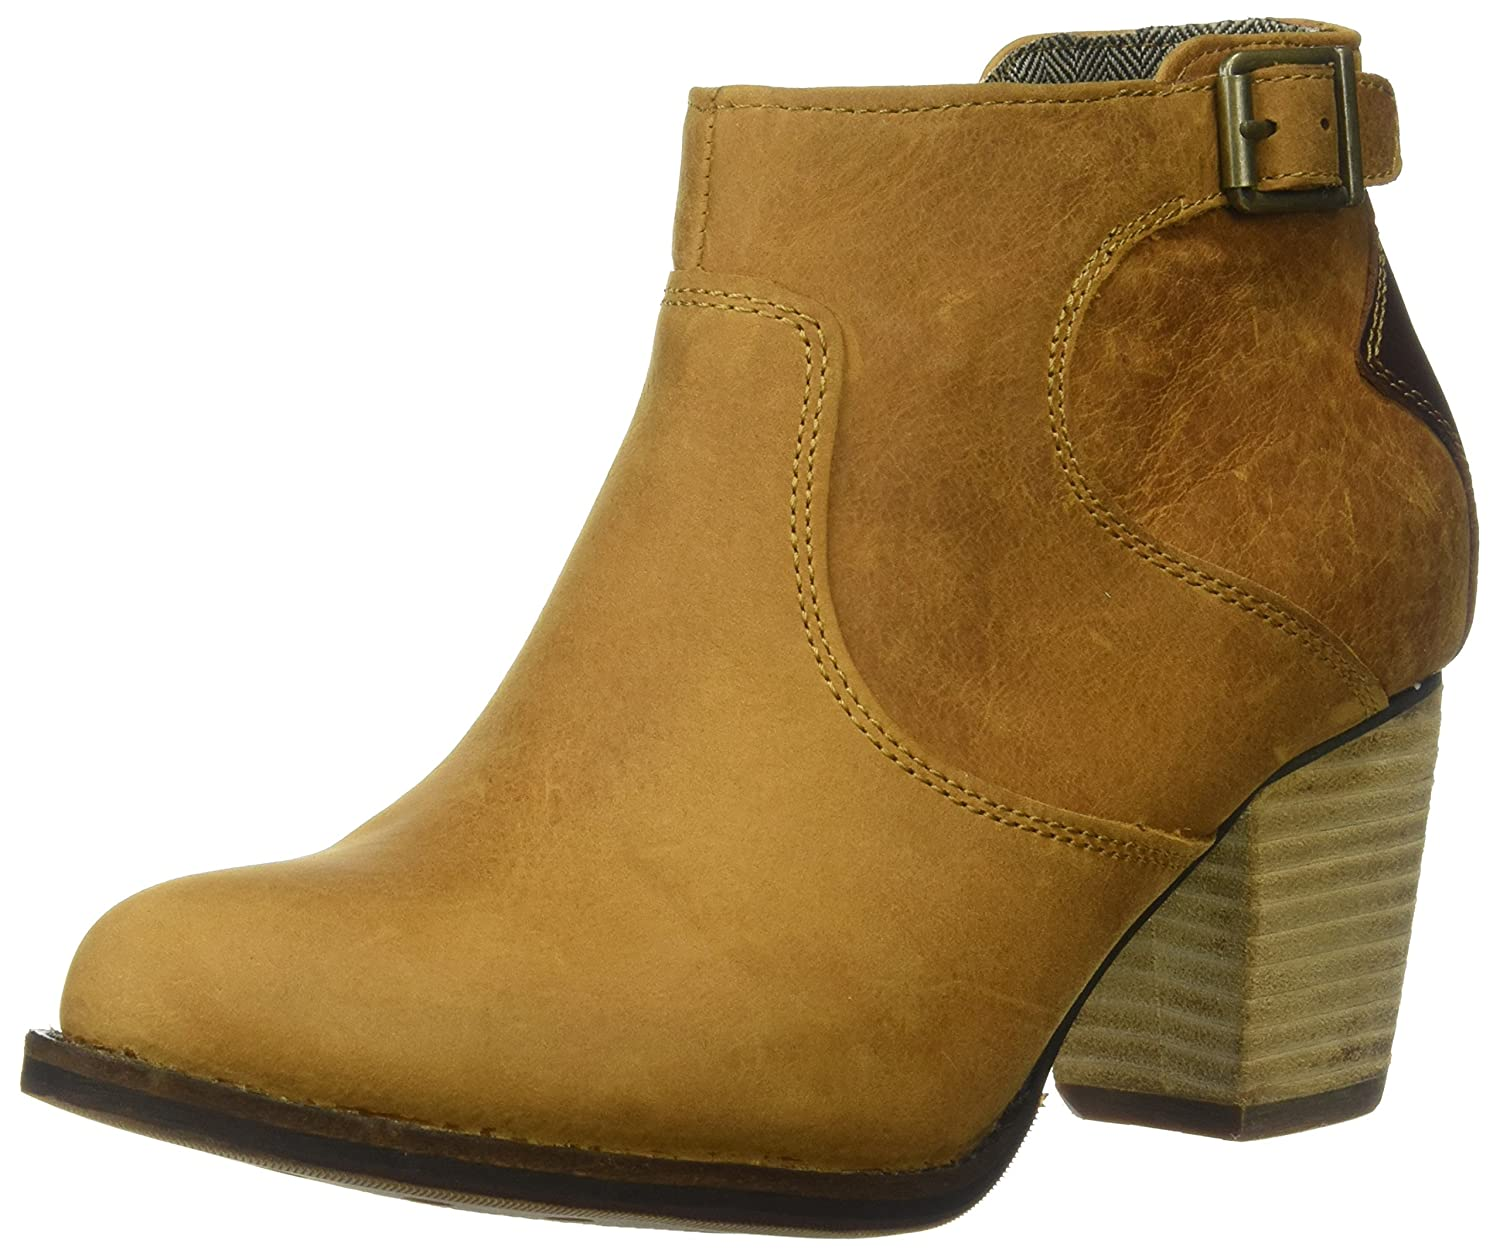 Caterpillar Women's Trestle Waterproof Leather Bootie with Side Zip Abd Stacked Heel Ankle Boot B01MXXYM27 6 B(M) US|Tan / Tater